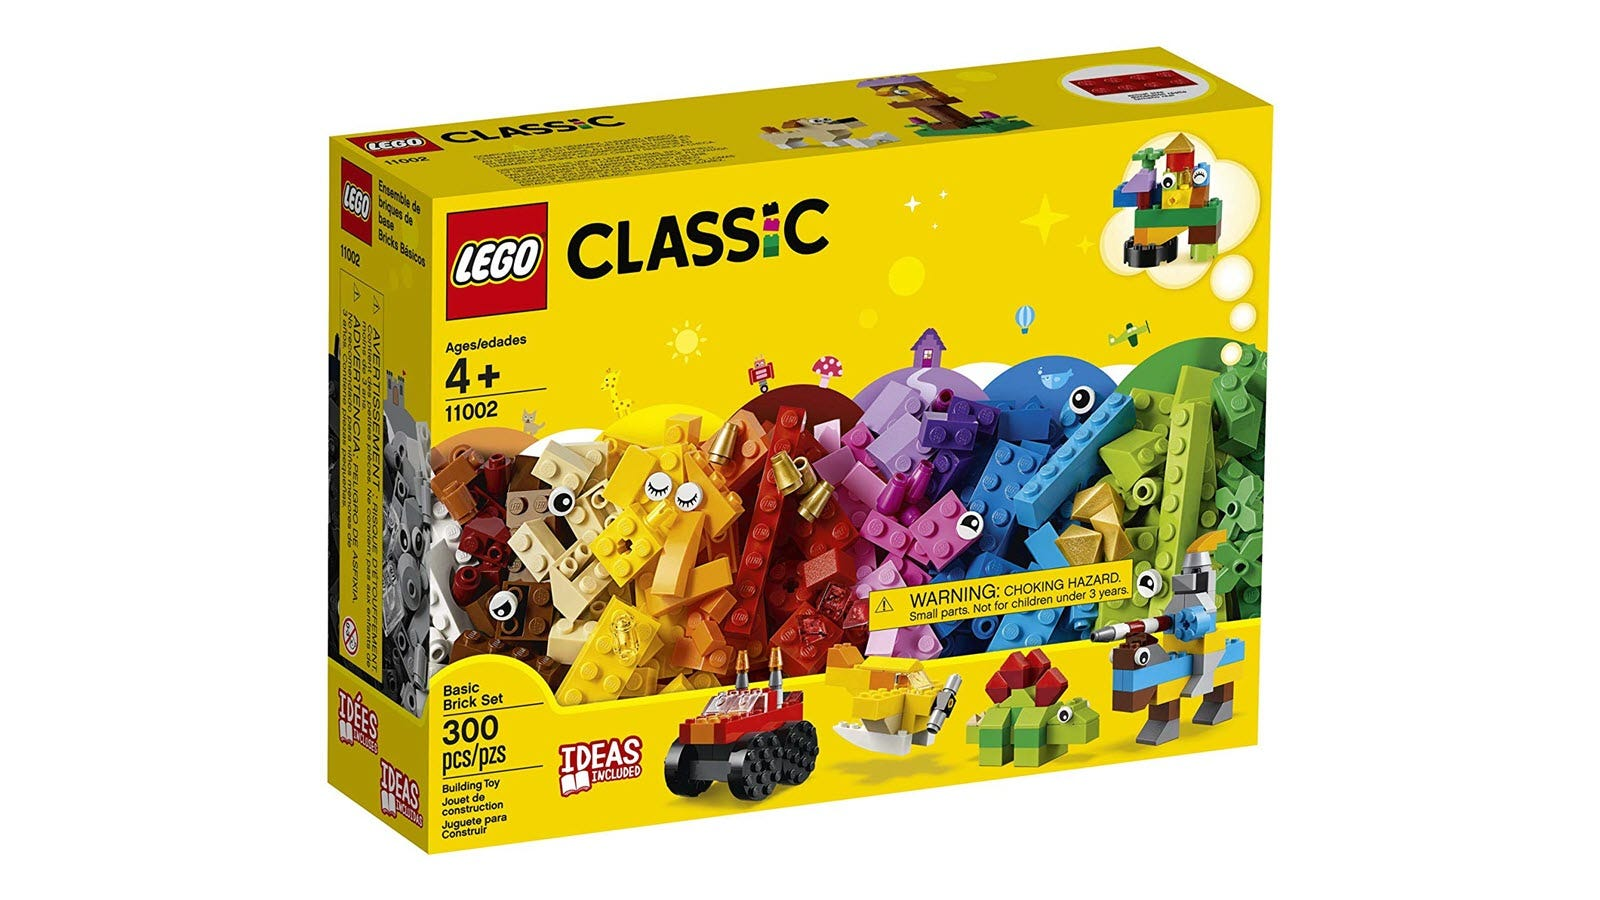 Classic LEGO set with a bunch of bricks